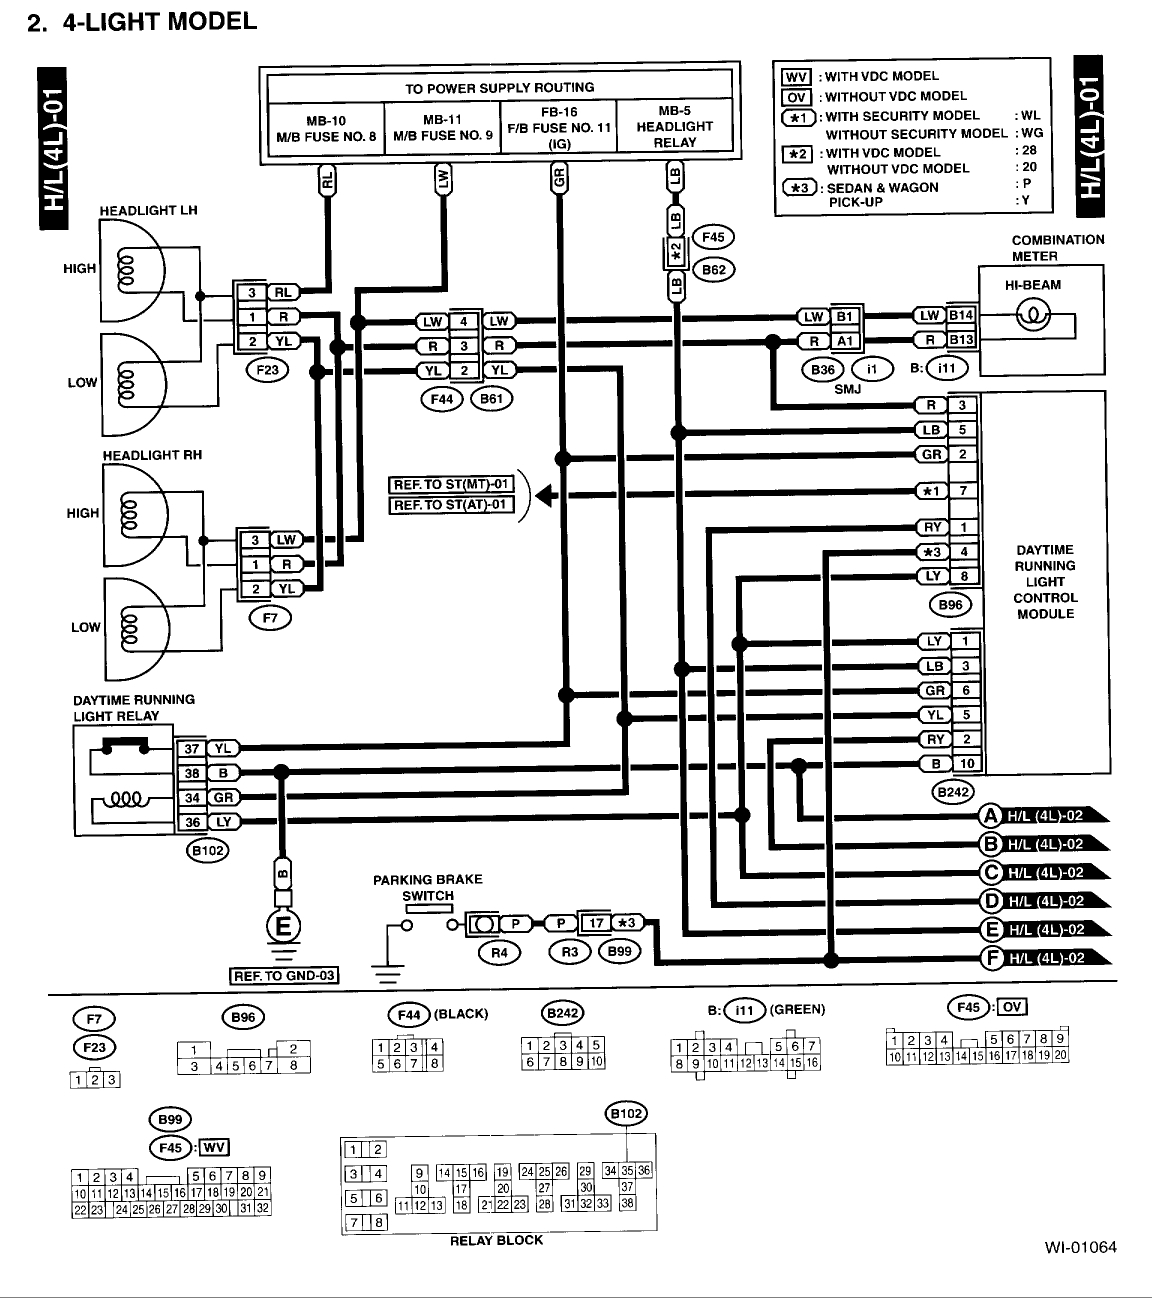 Subaru Impreza 2010 Engine Diagram